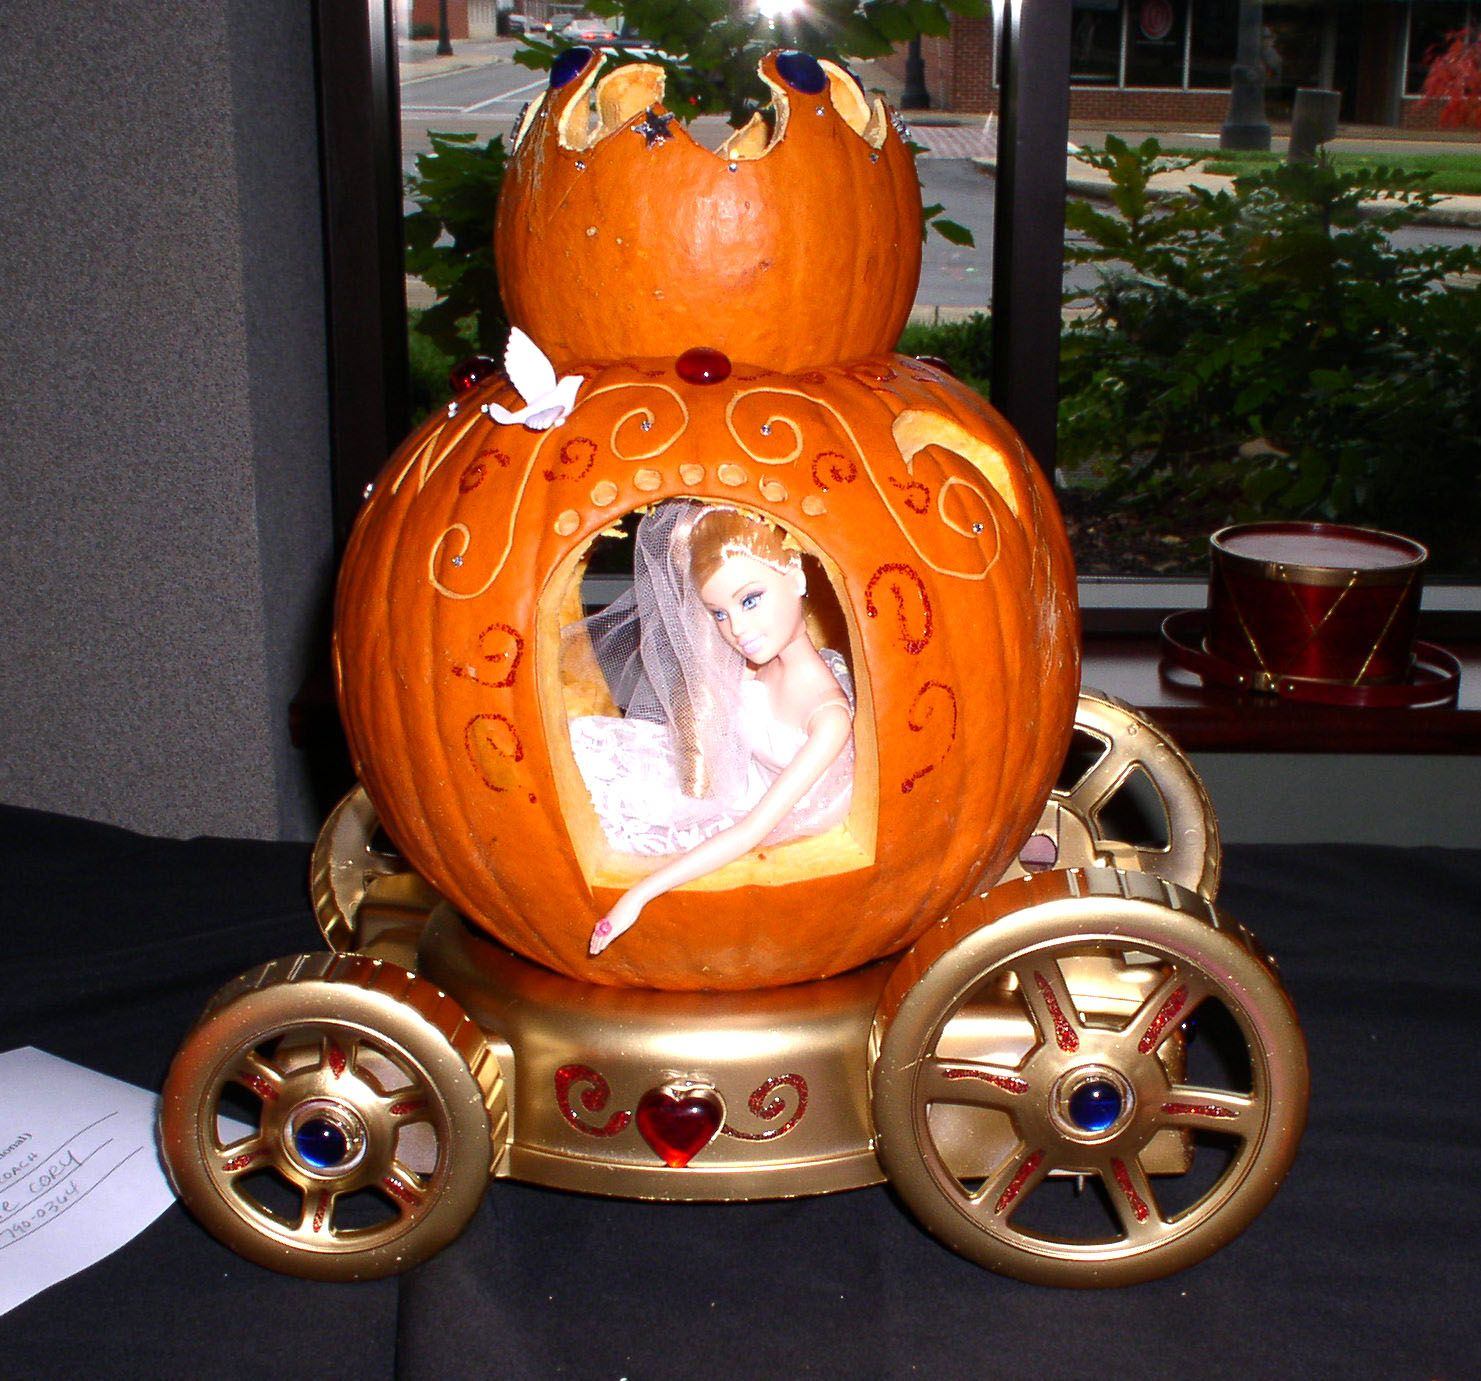 Museum center at ive points to host sixth annual pumpkin